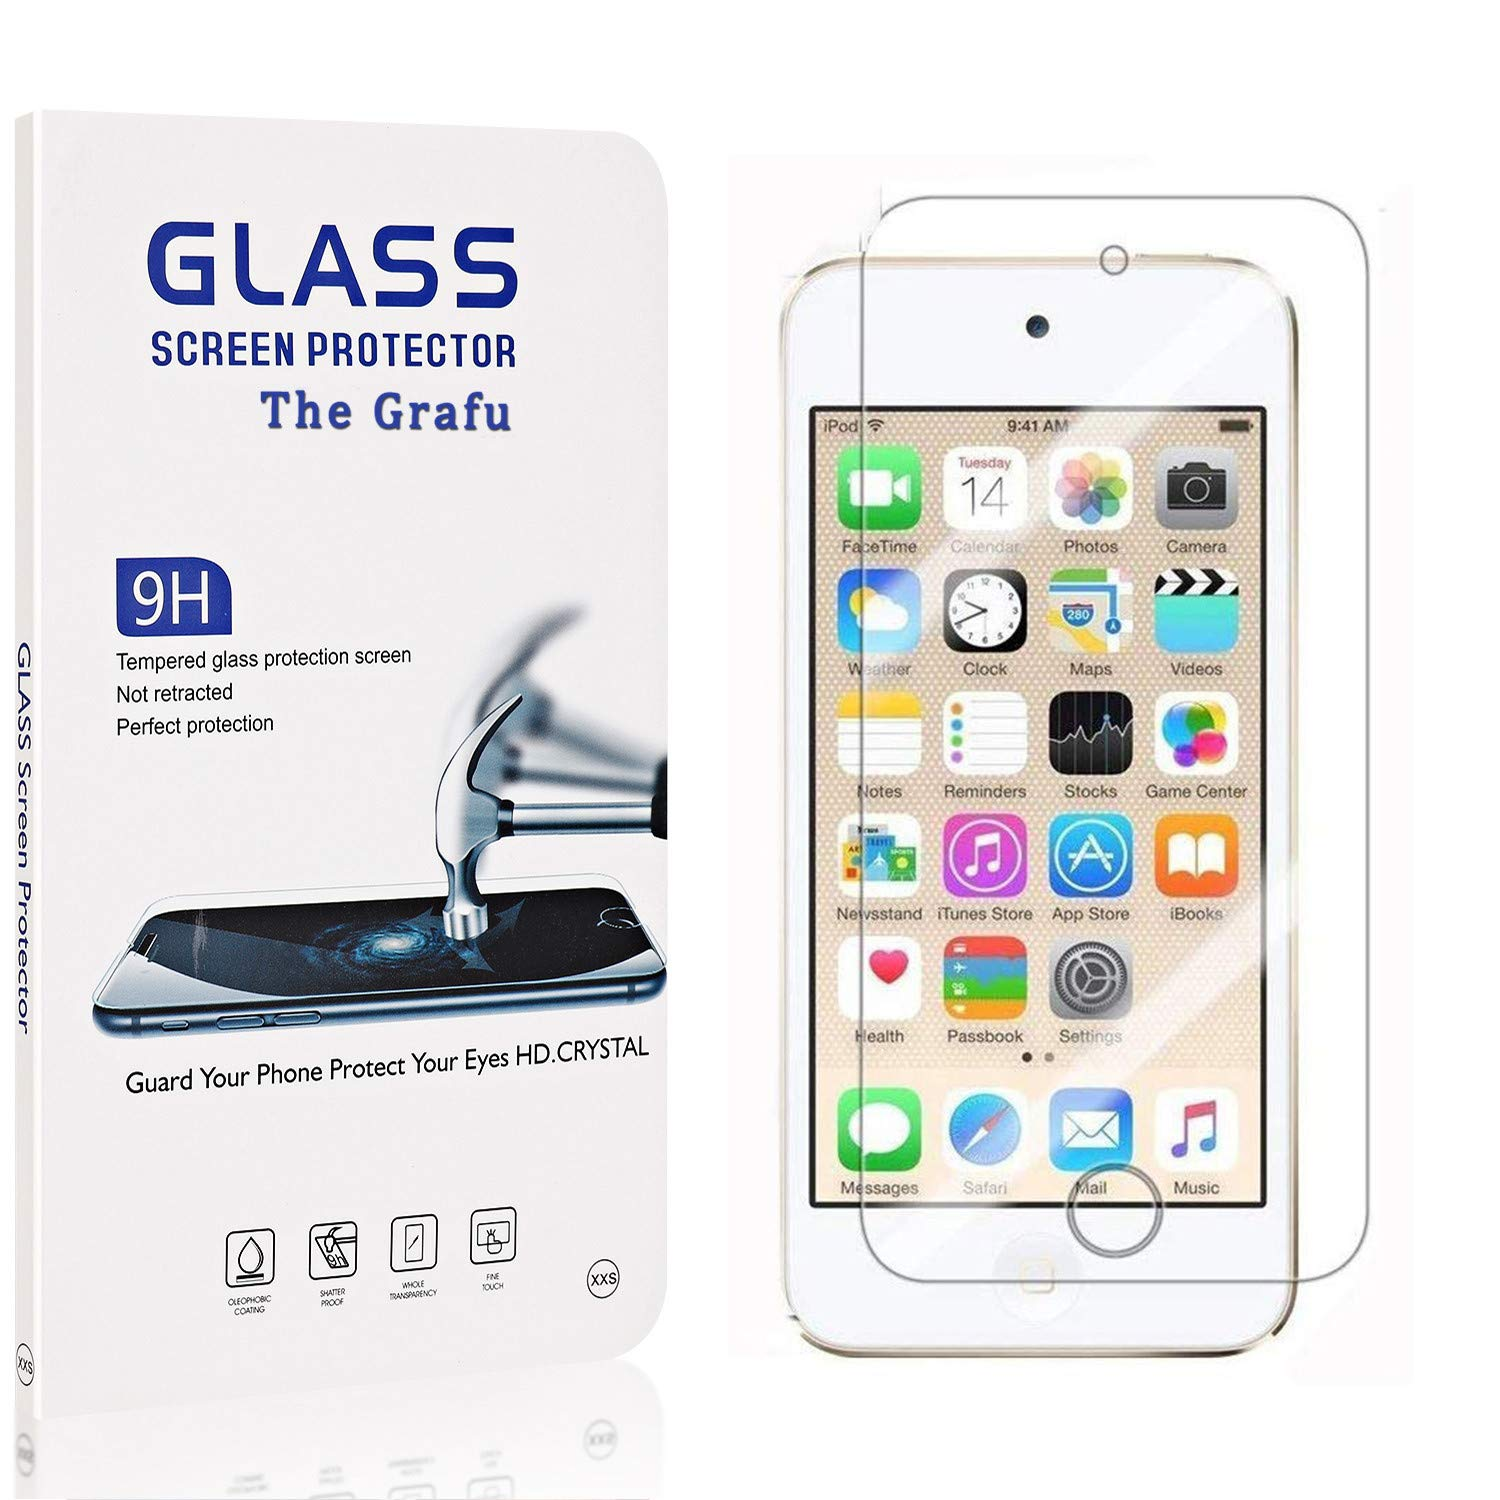 The Grafu Screen Protector Compatible with iPhone 6S // iPhone 6 1 Pack 9H Hardness High Clarity Tempered Glass Screen Protector for iPhone 6S // iPhone 6 Anti Scratch